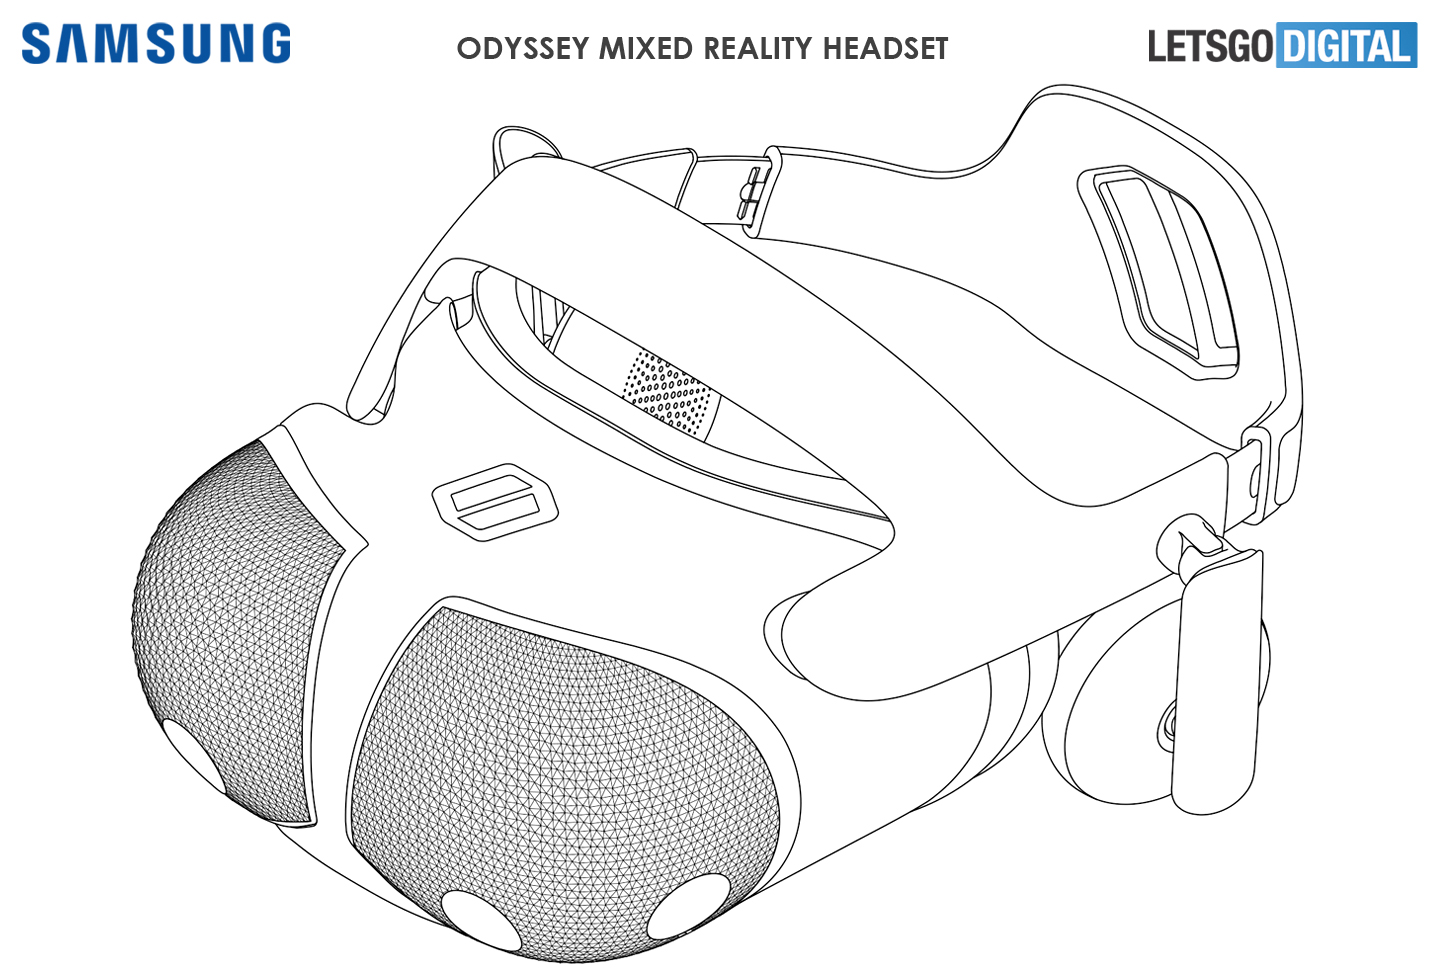 Samsung is working on a groovy new Mixed Reality Odyssey headset 2